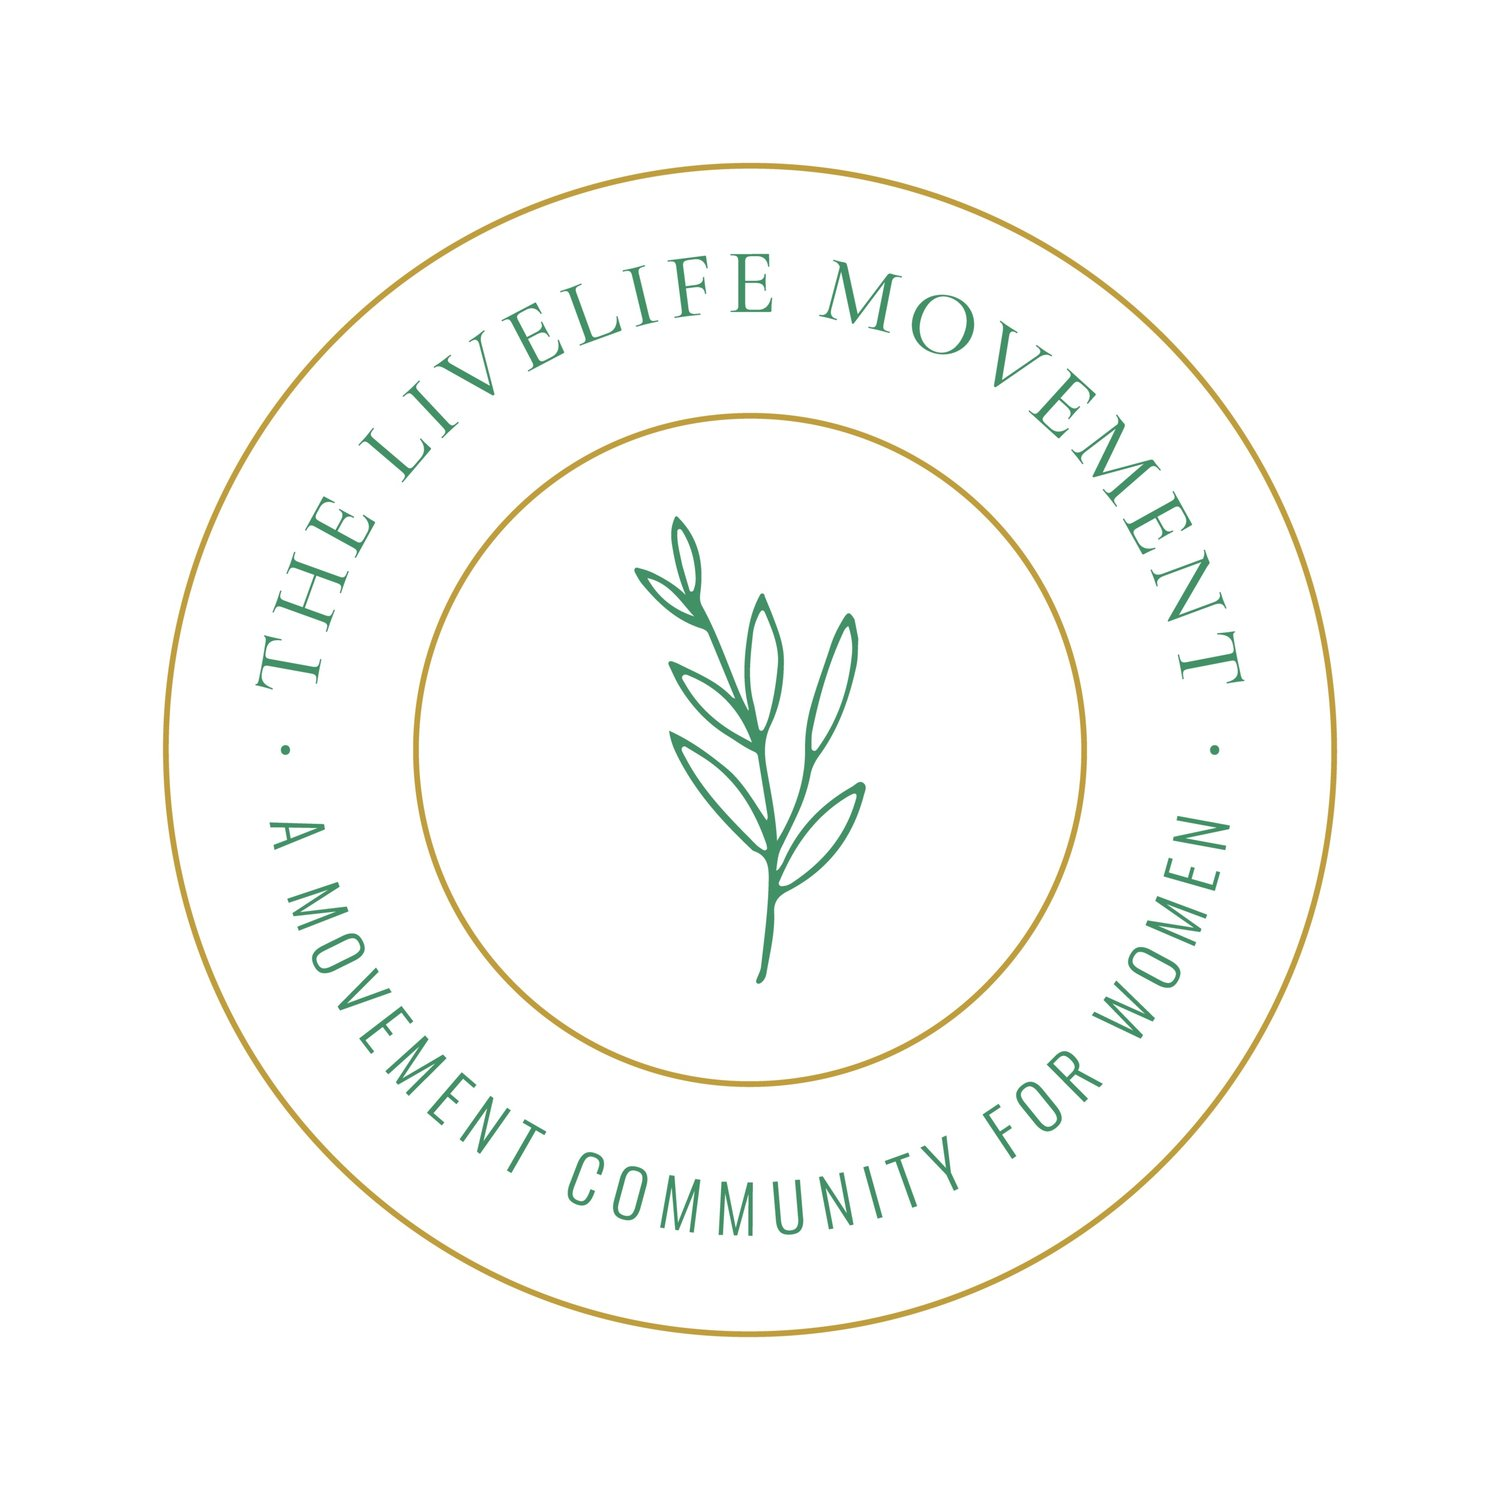 The LiveLife Movement